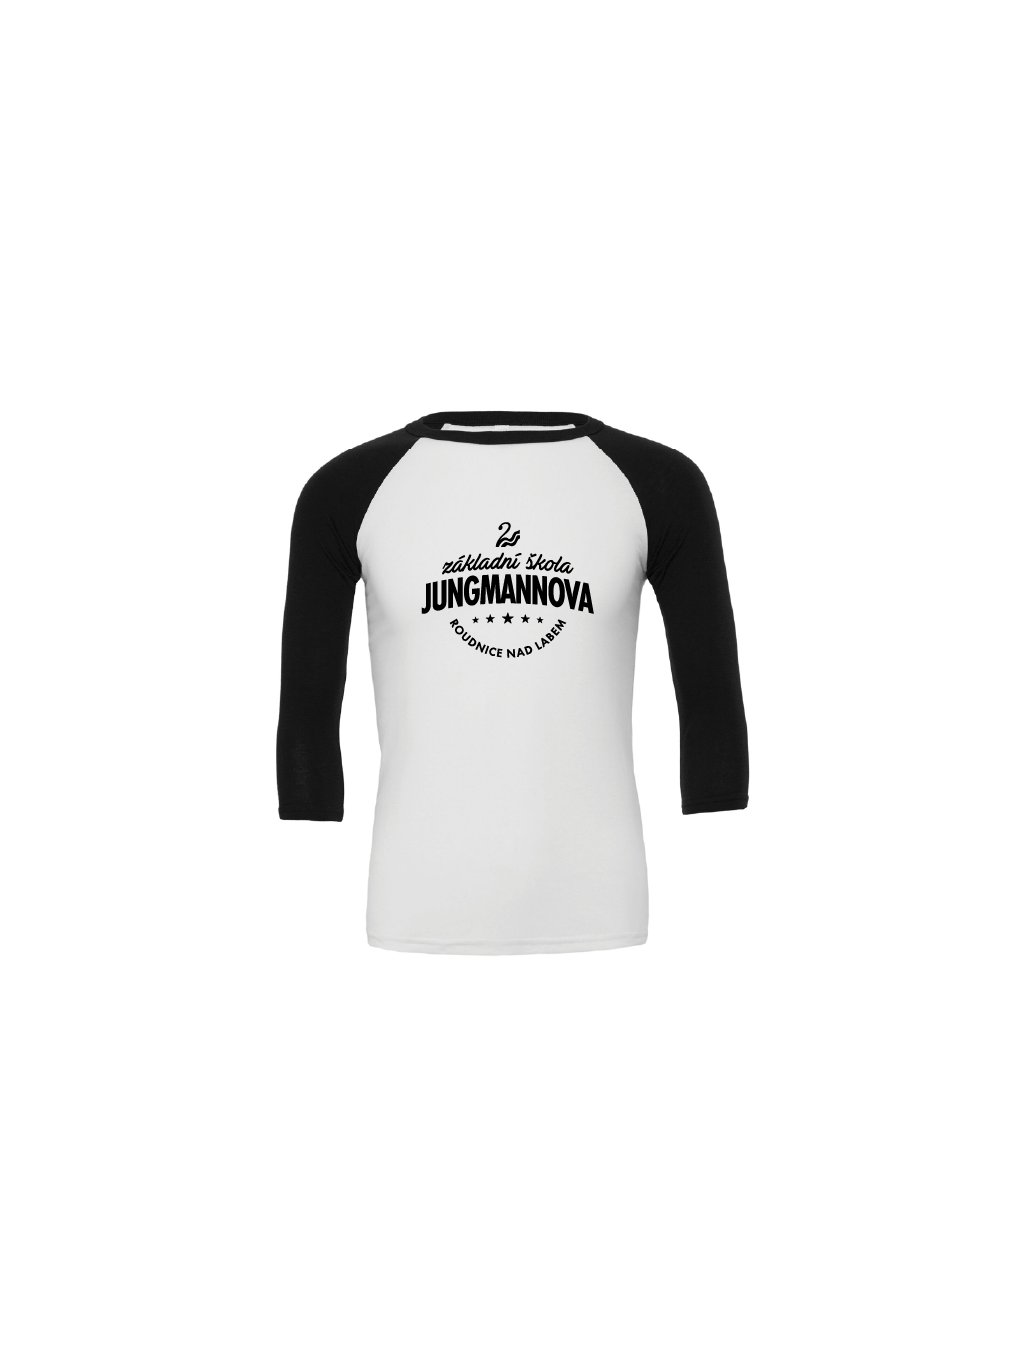 Baseball tee white black!!!